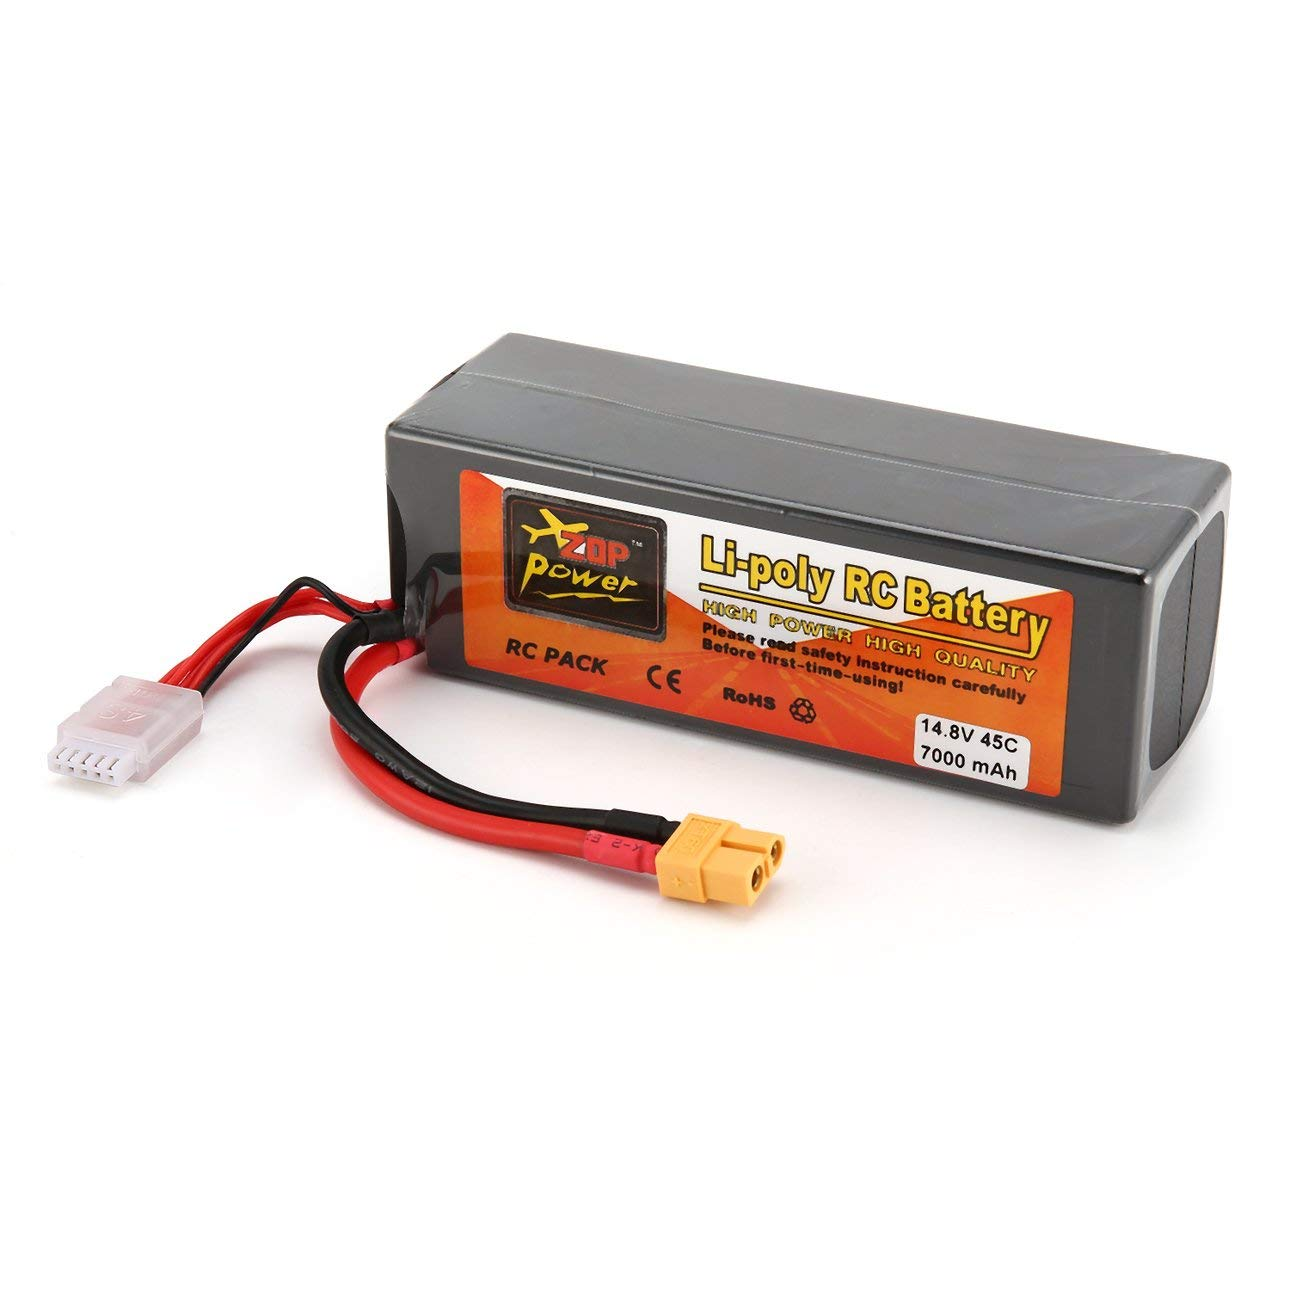 Liobaba 14.8V 7000mAh 45C 4S 1P Lipo Battery XT60 Plug Rechargeable RC Racing Drone Quadcopter Helicopter Car Boat Model Dark-Gray